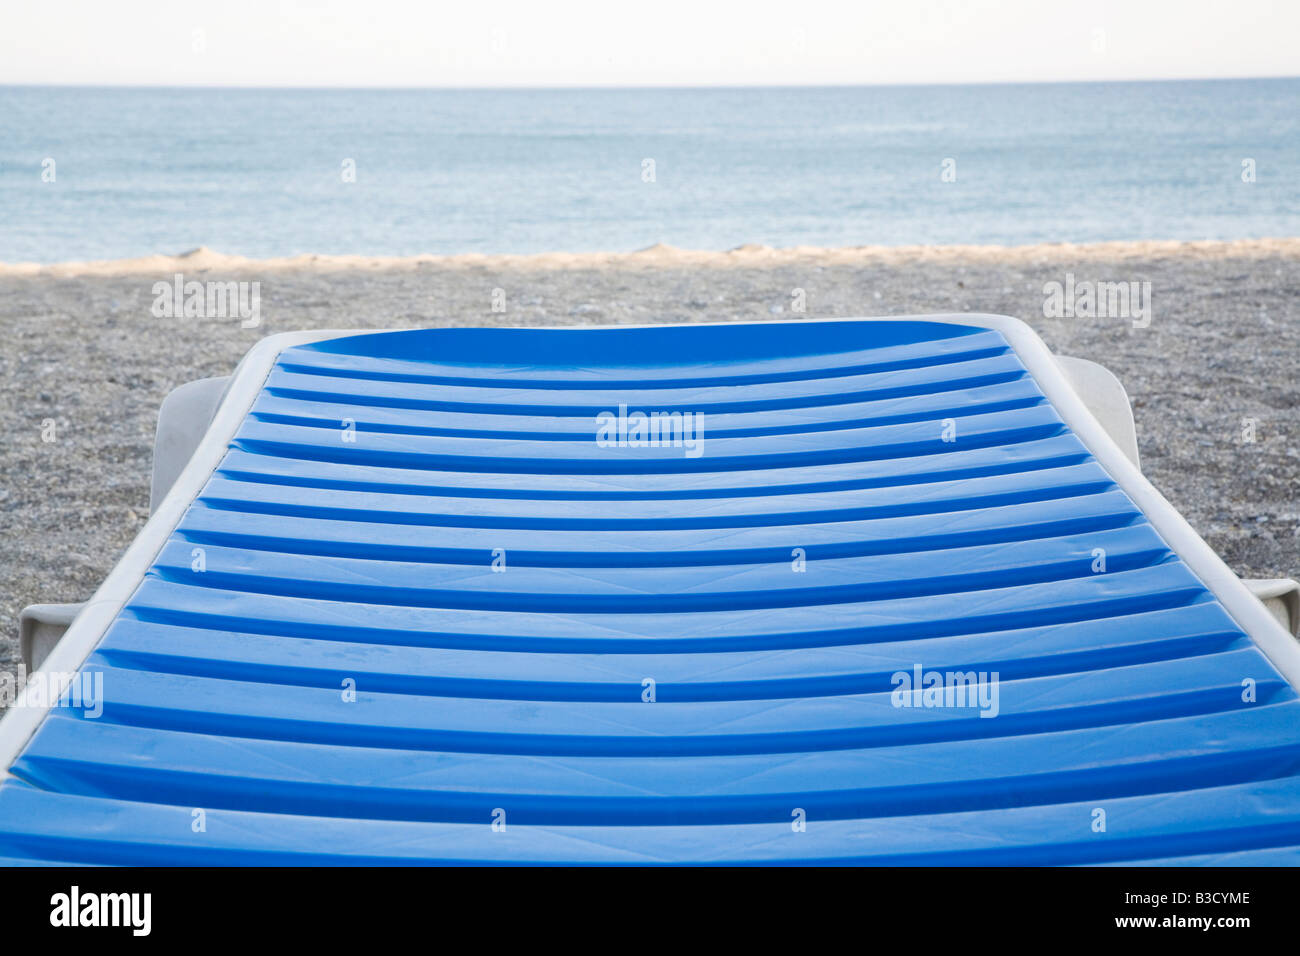 Espagne, Andalousie, seul lounge chair on beach, close-up Photo Stock